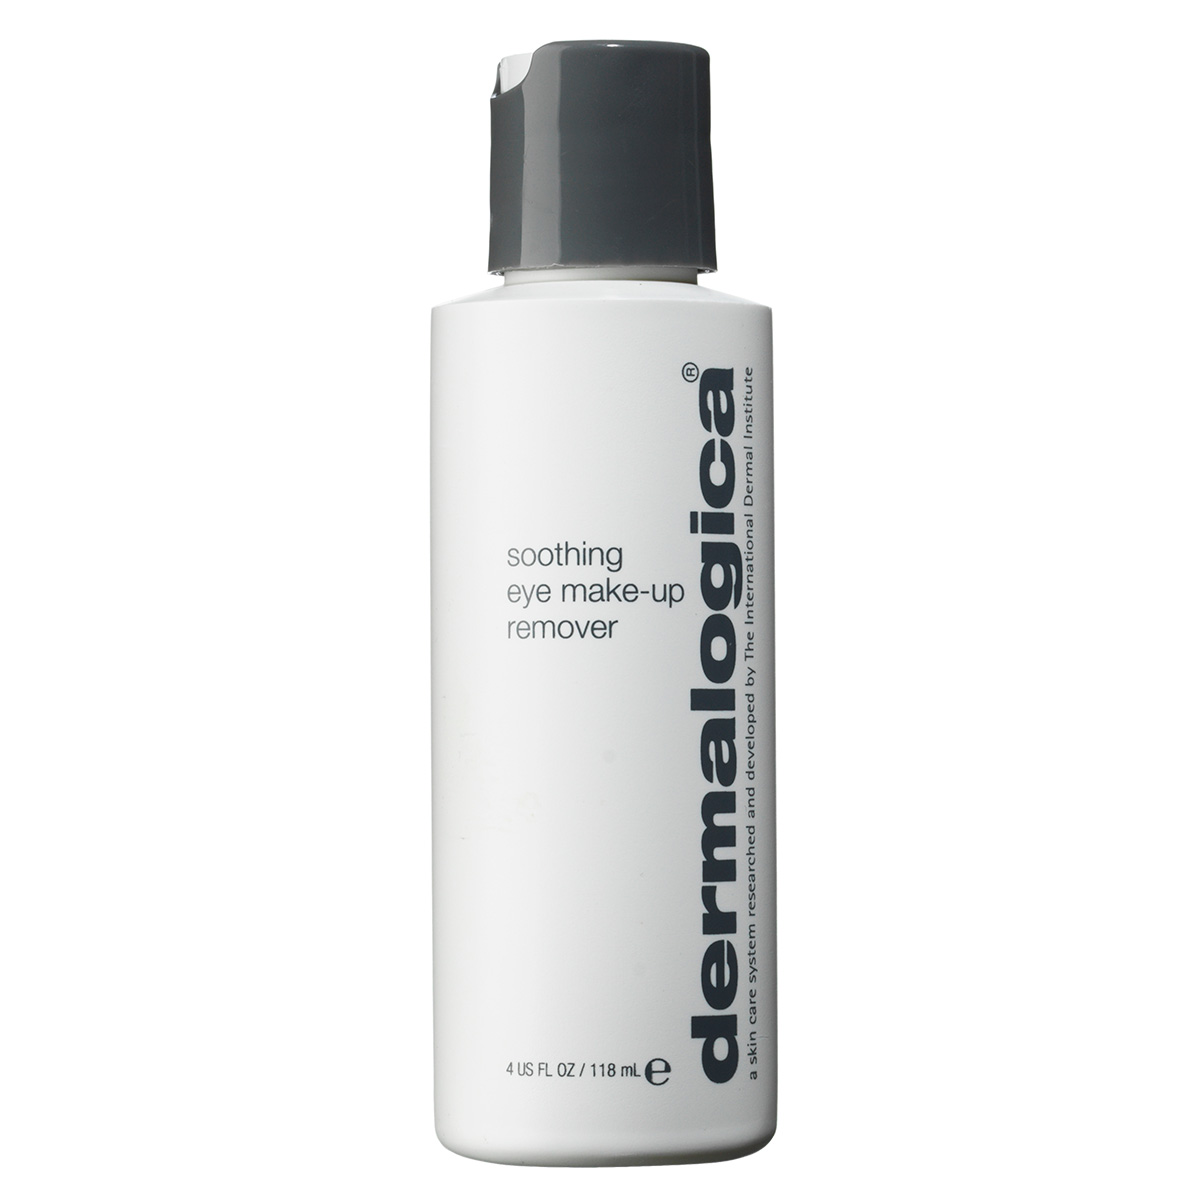 Dermalogica Soothing Eye Make-Up Remover - 118 ml